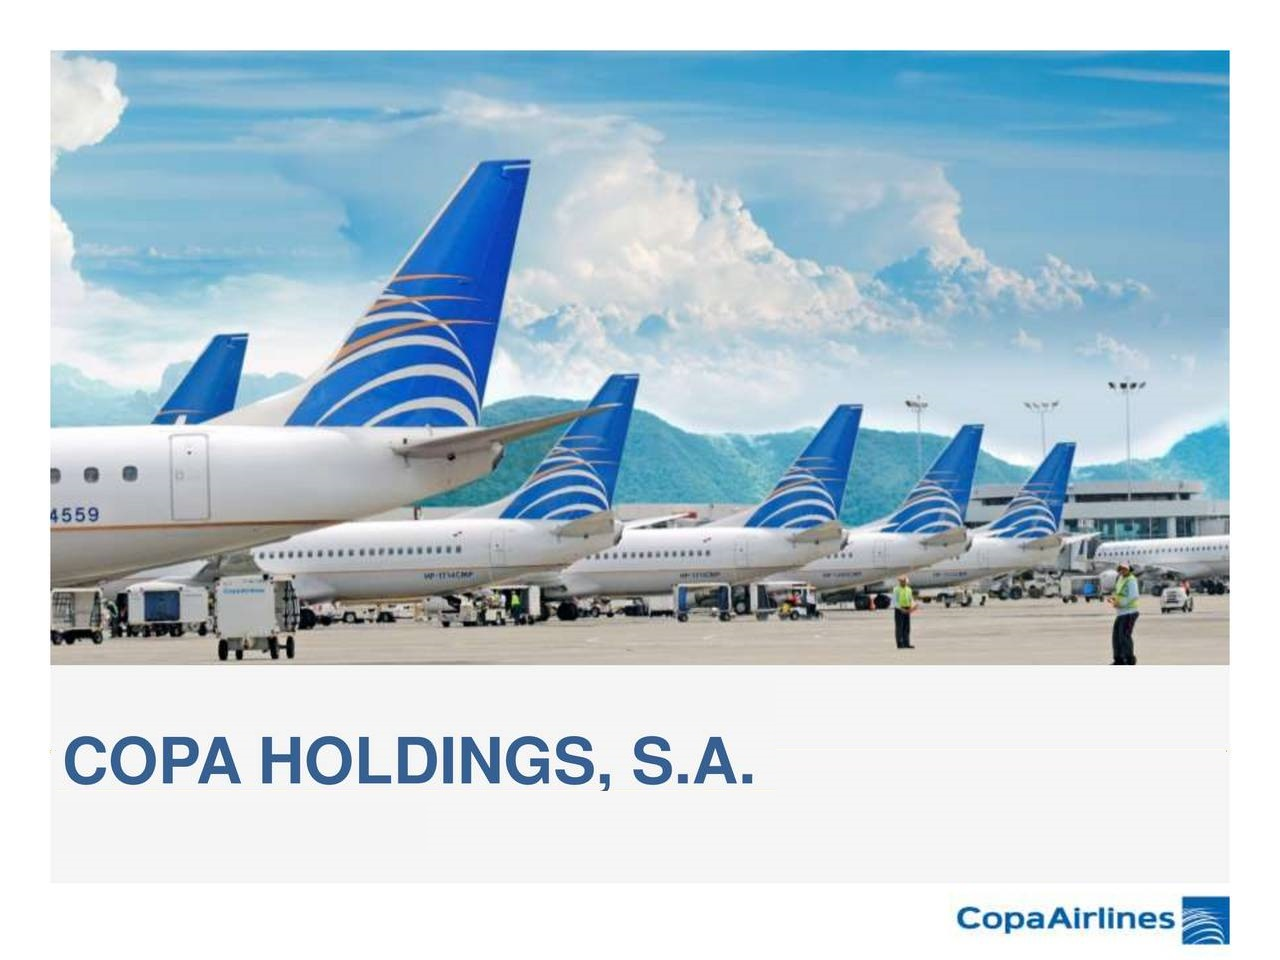 Copa Holdings: March capacity, traffic down significantly compared to last year